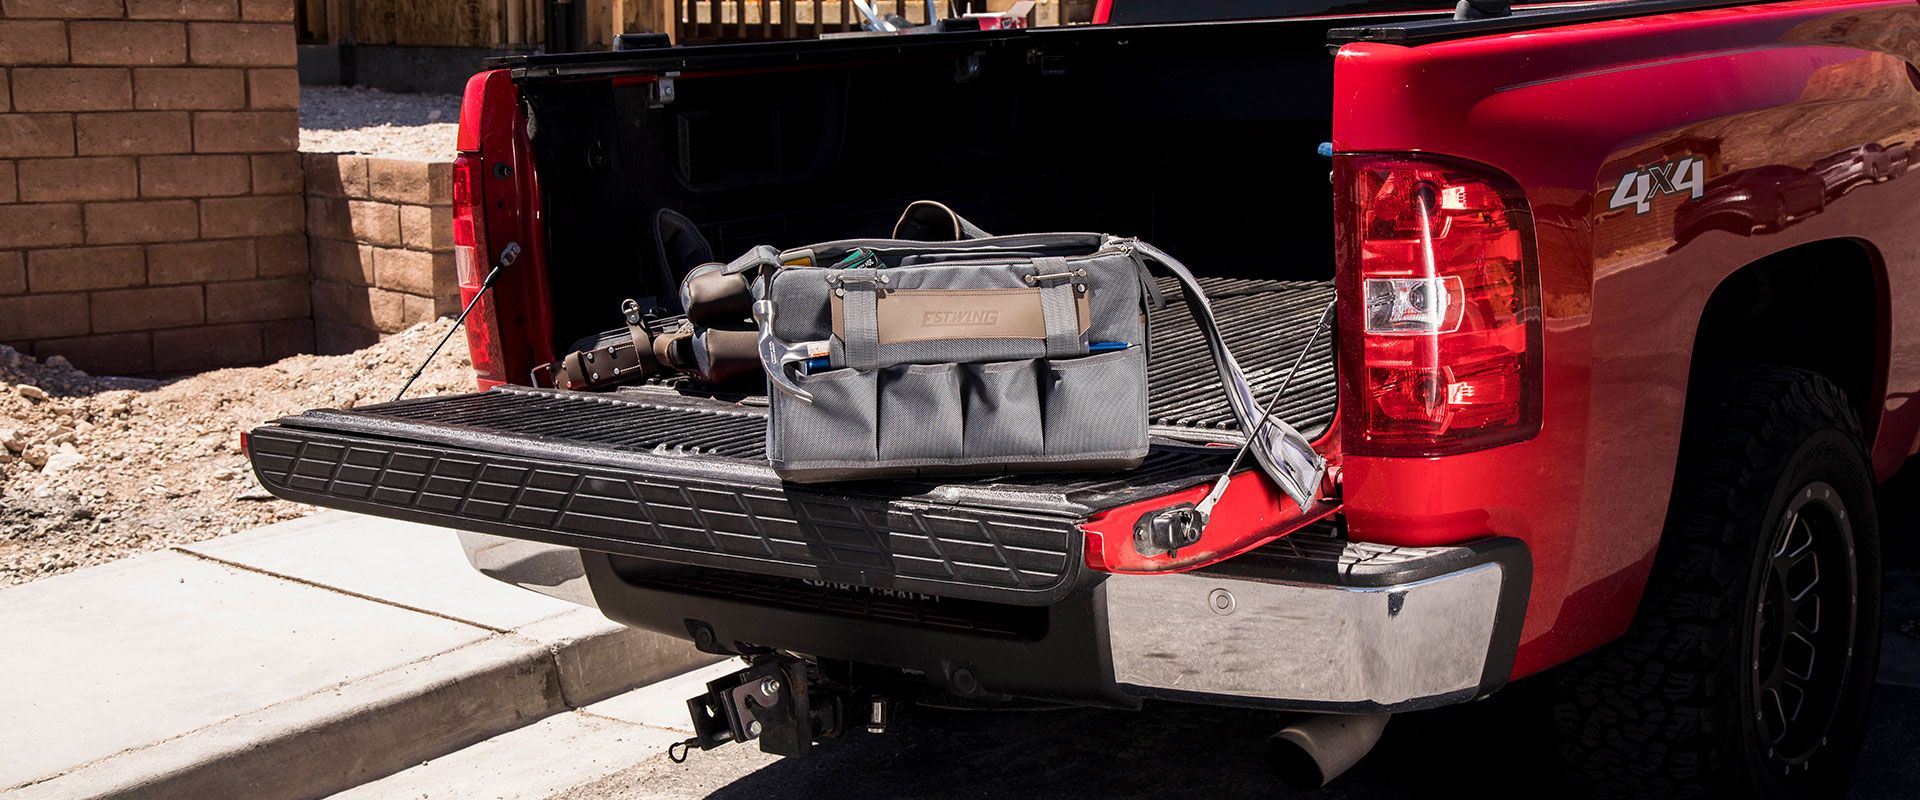 Estwing work tool bags and tool storage